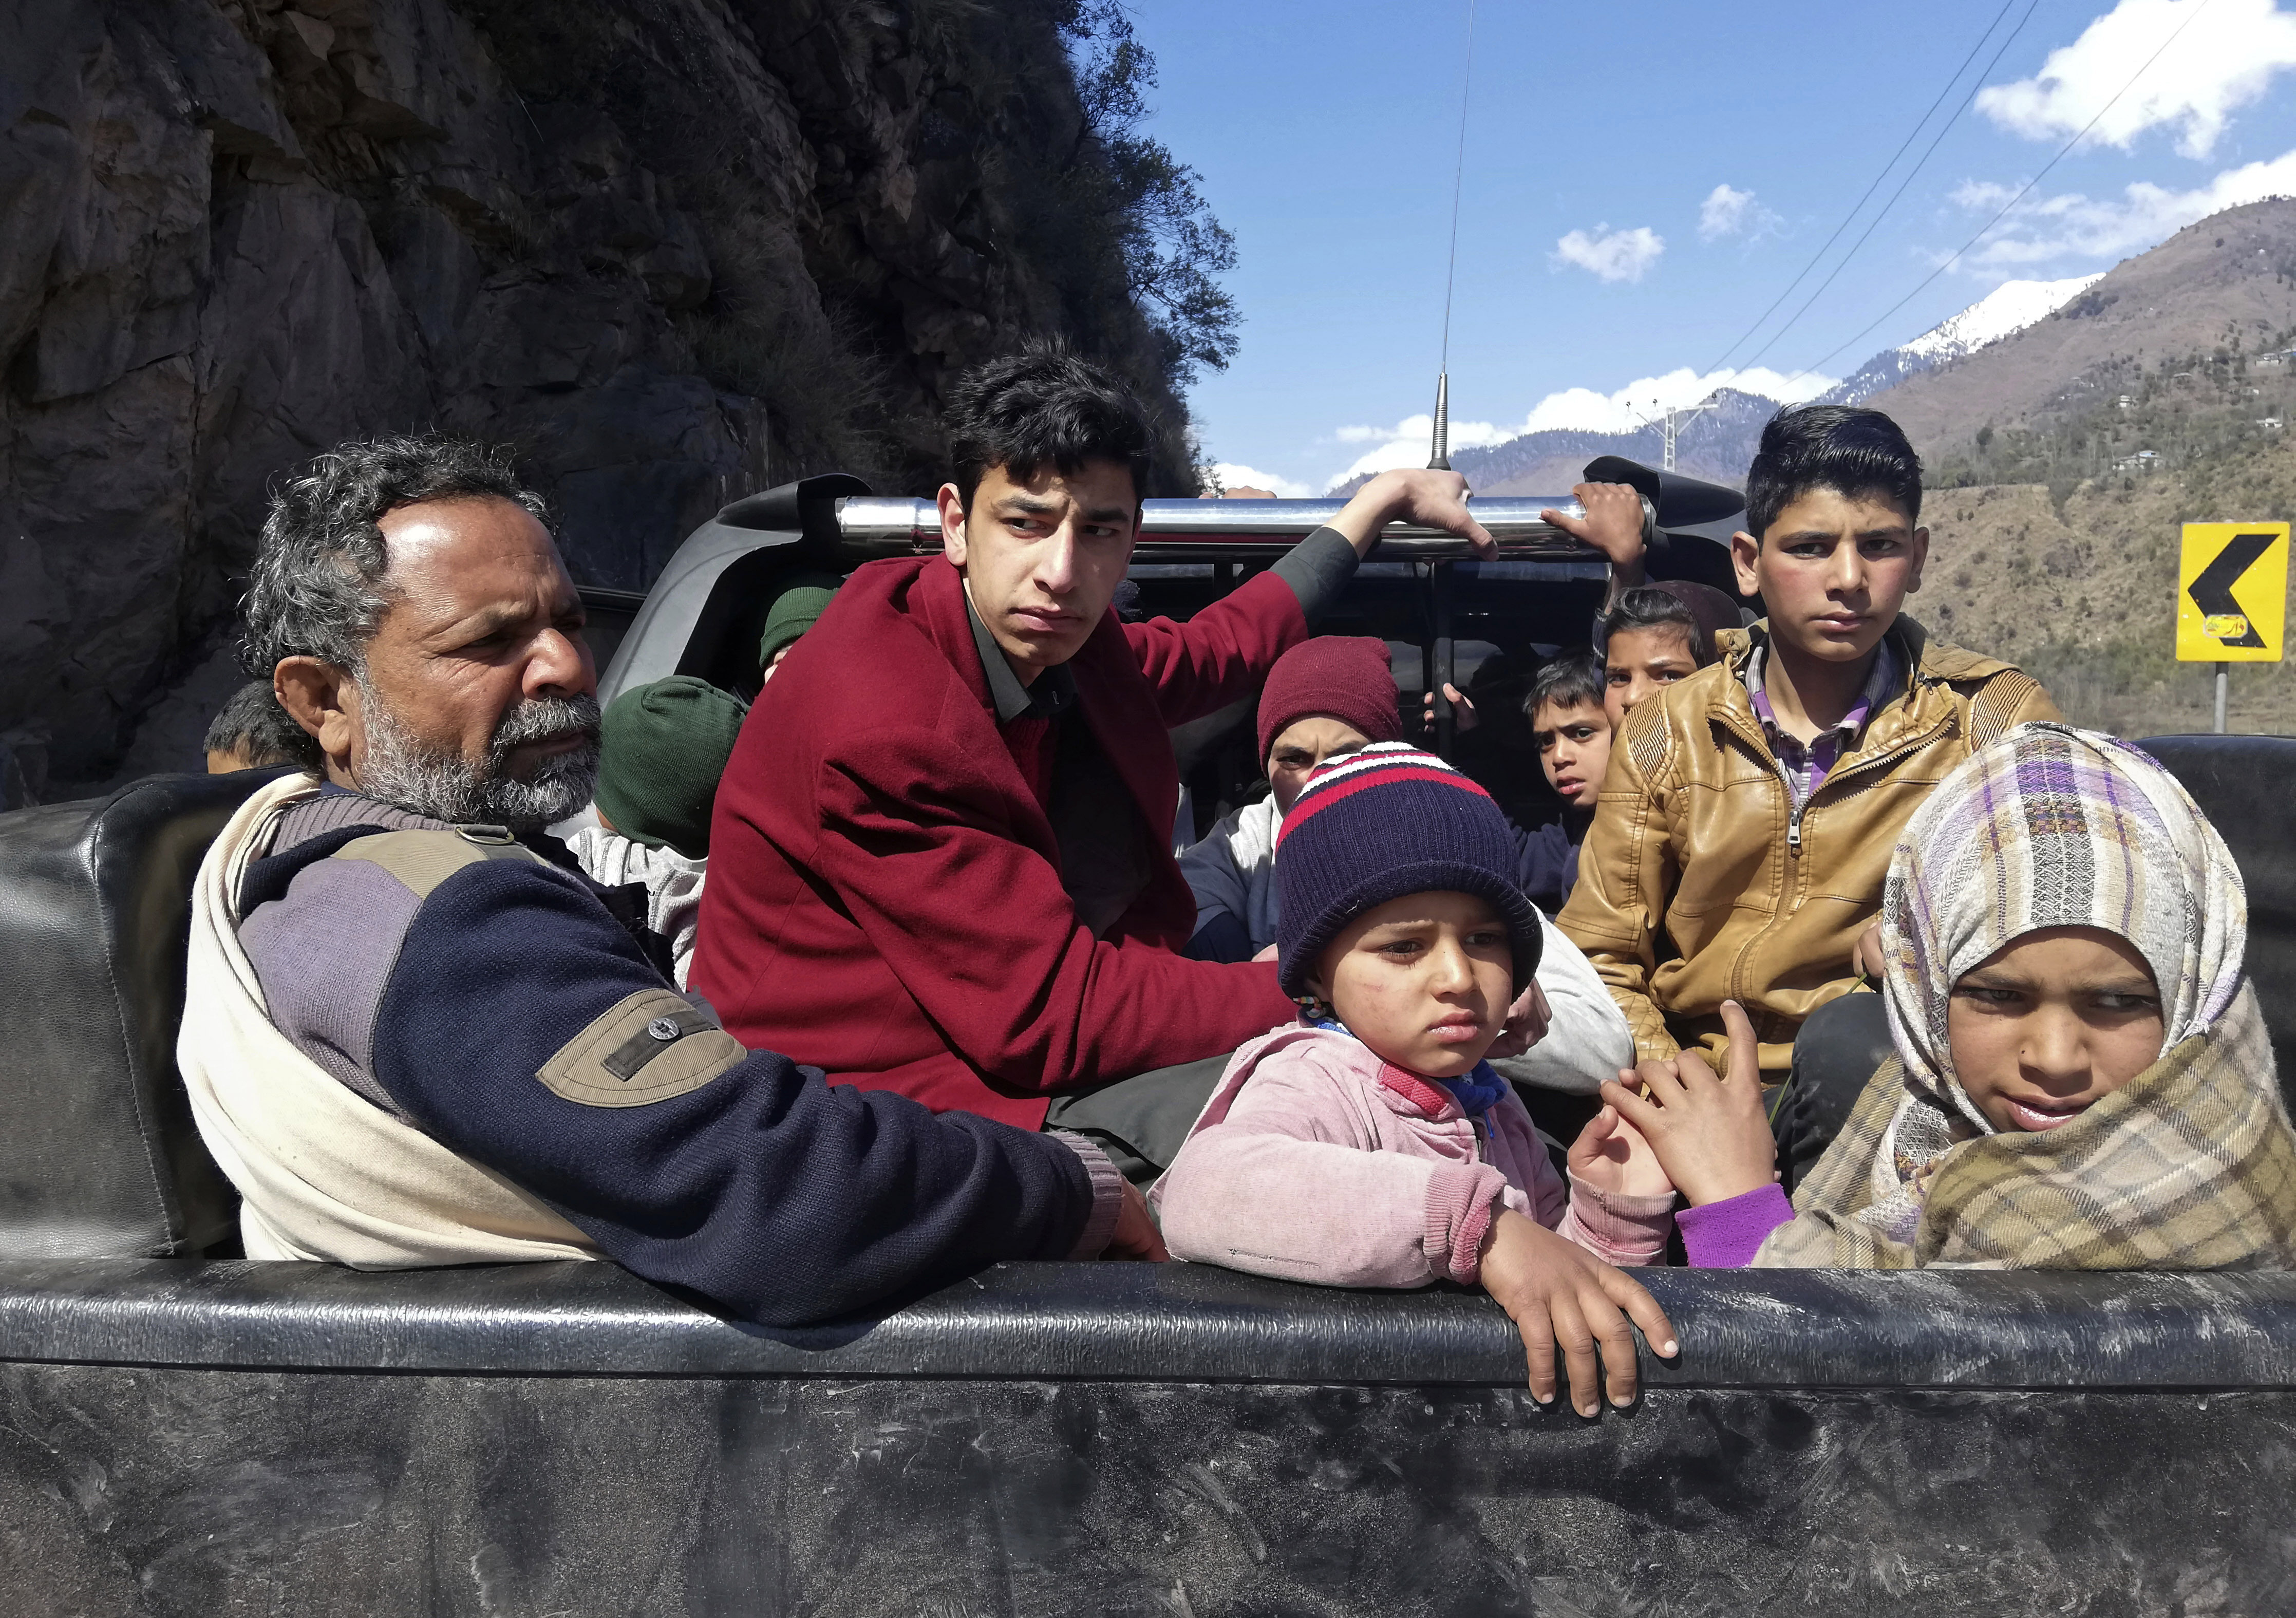 Pakistani Kashmiris flee the town of Chakoti which is about 3 miles, 5 km, from the Pakistan Indian border, following the intense exchange of fire between Pakistan and India, at the Line of Control in Pakistani Kashmir, Wednesday, Feb. 27, 2019. Pakistan's military said Wednesday it shot down two Indian warplanes in the disputed region of Kashmir and captured two pilots, raising tensions between the nuclear-armed rivals to a level unseen in 20 years. (AP Photo/M.D. Mughal)